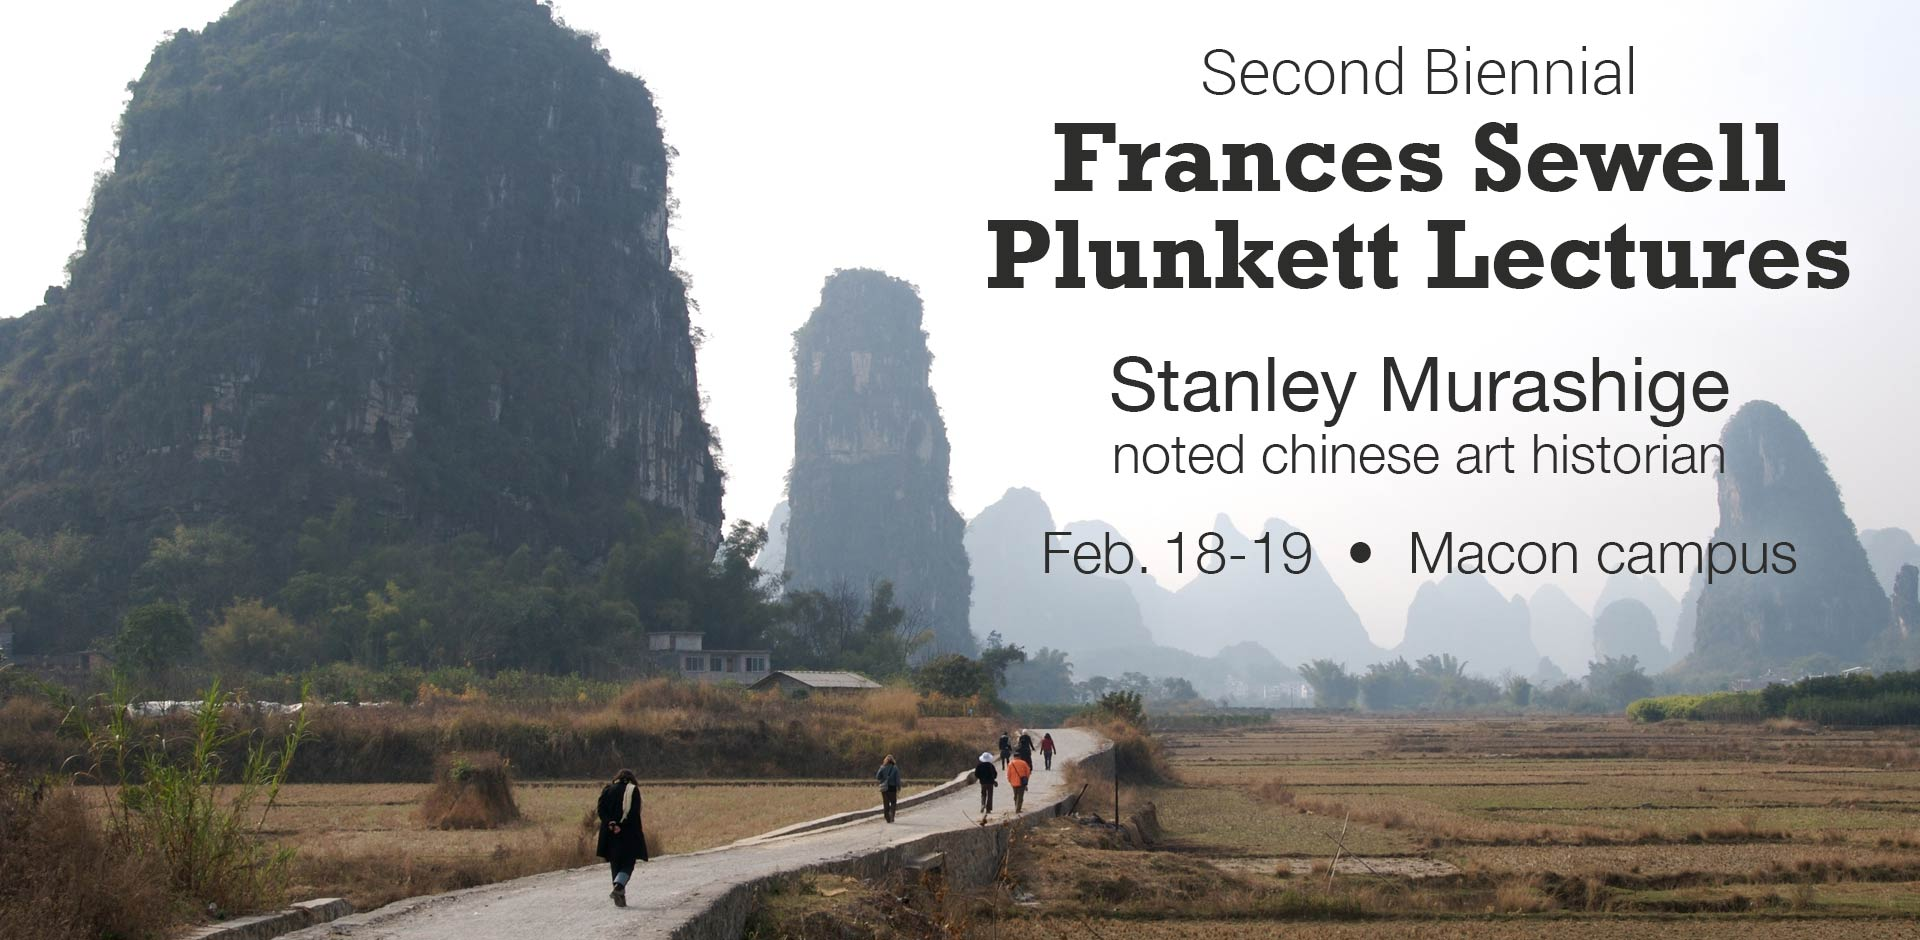 Second Biennial Frances Sewell Plunkett Lectures to Feature Noted Chinese Art Historian Stanley Murashige